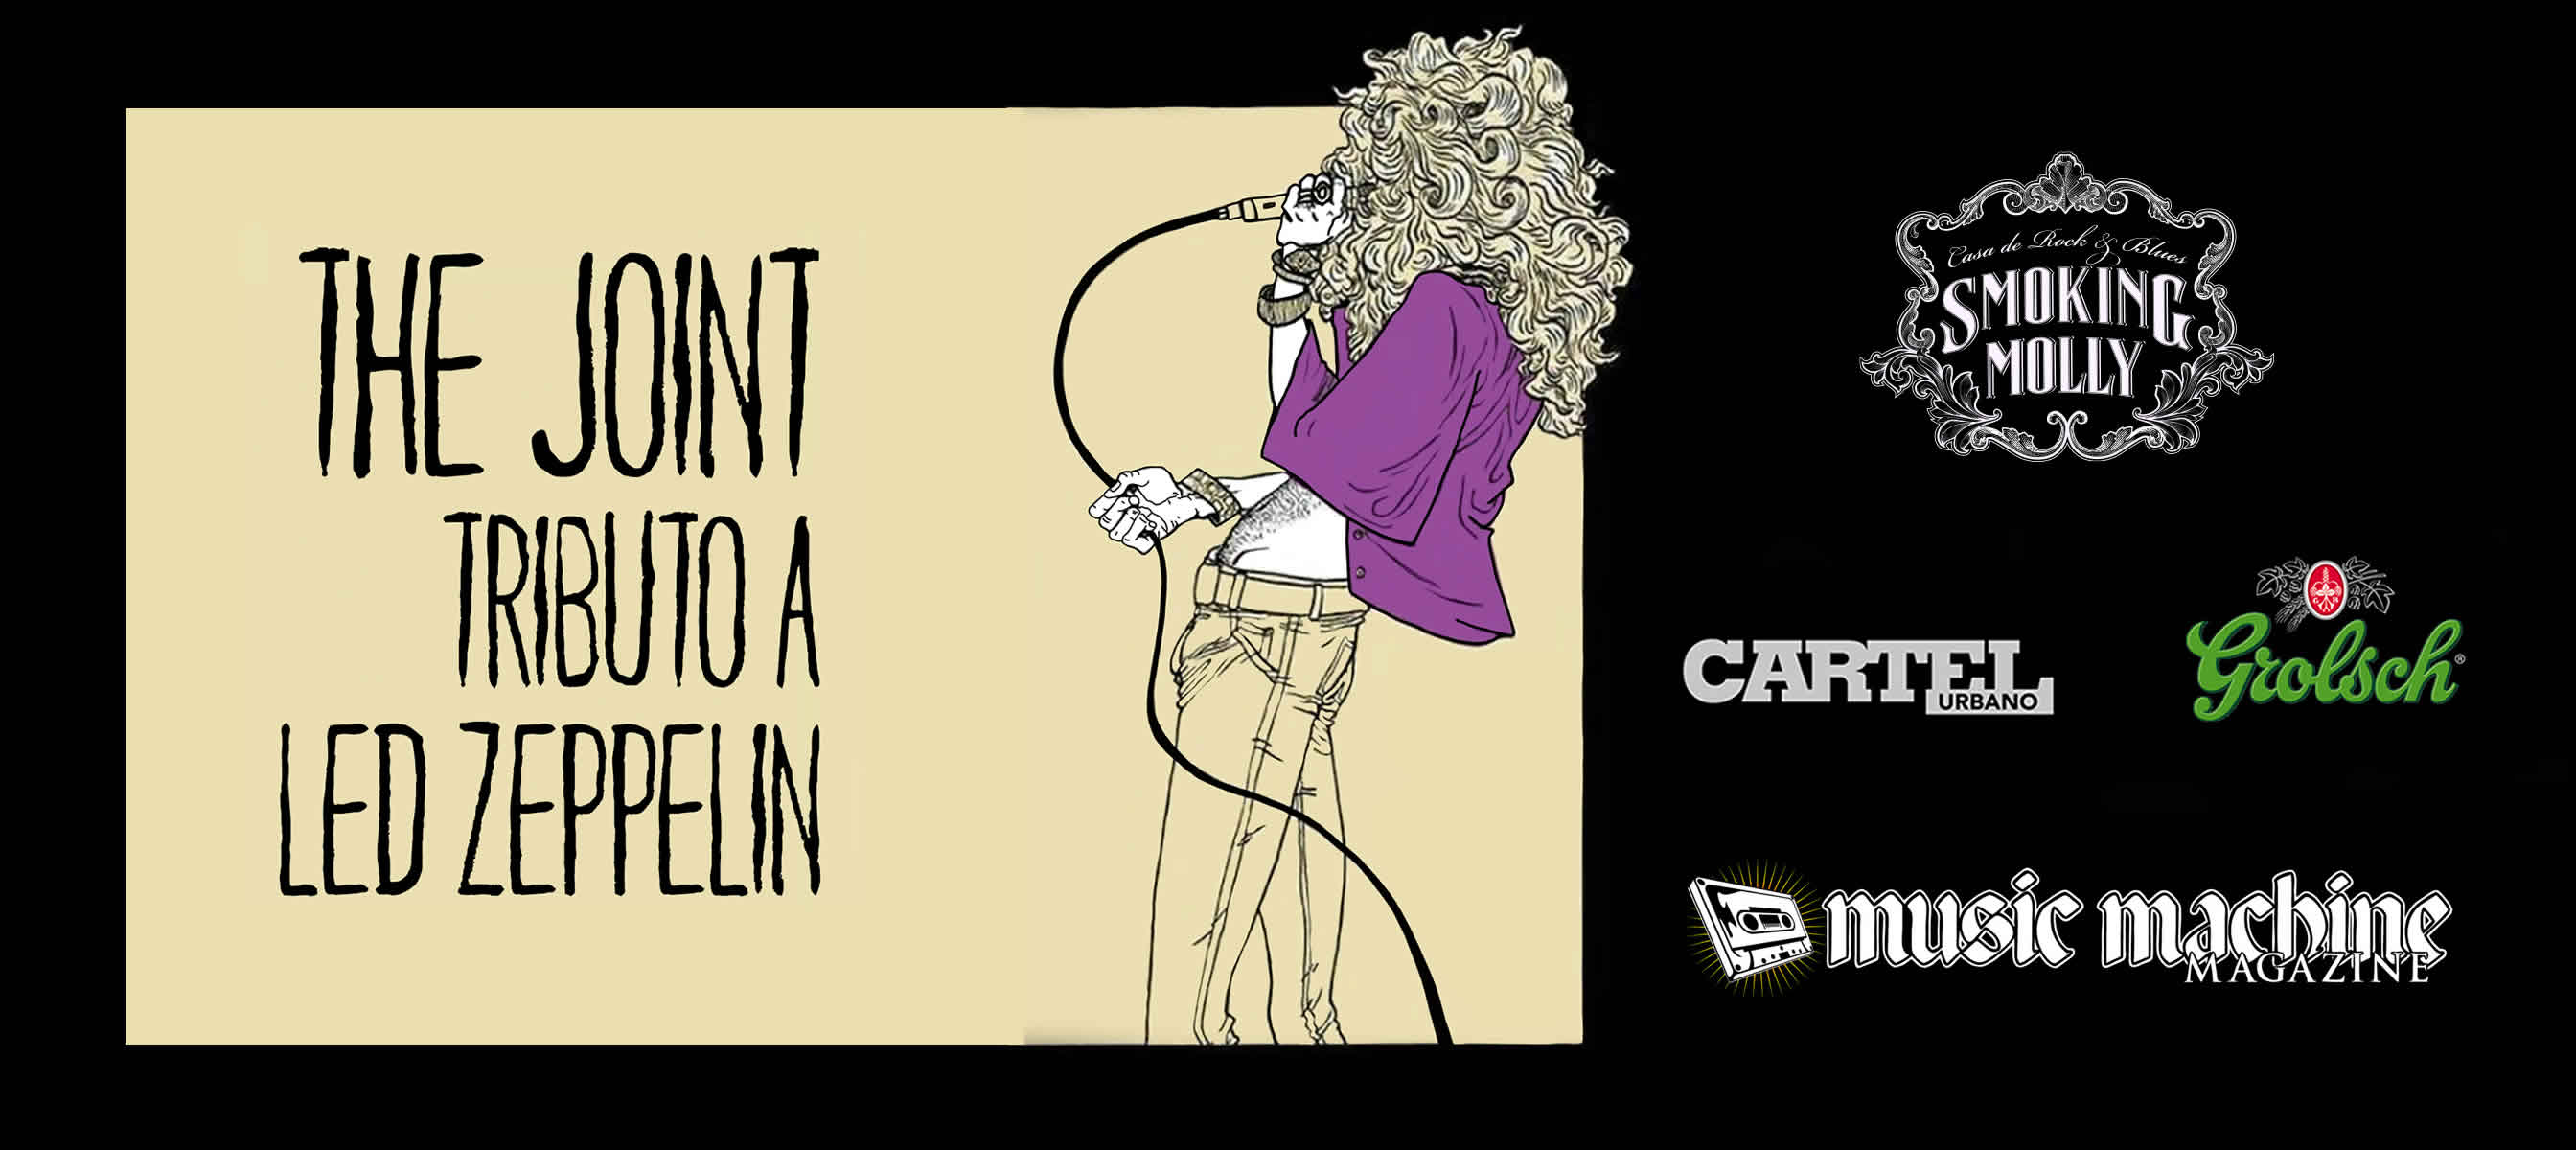 Concierto the joint tributo a led zeppelin